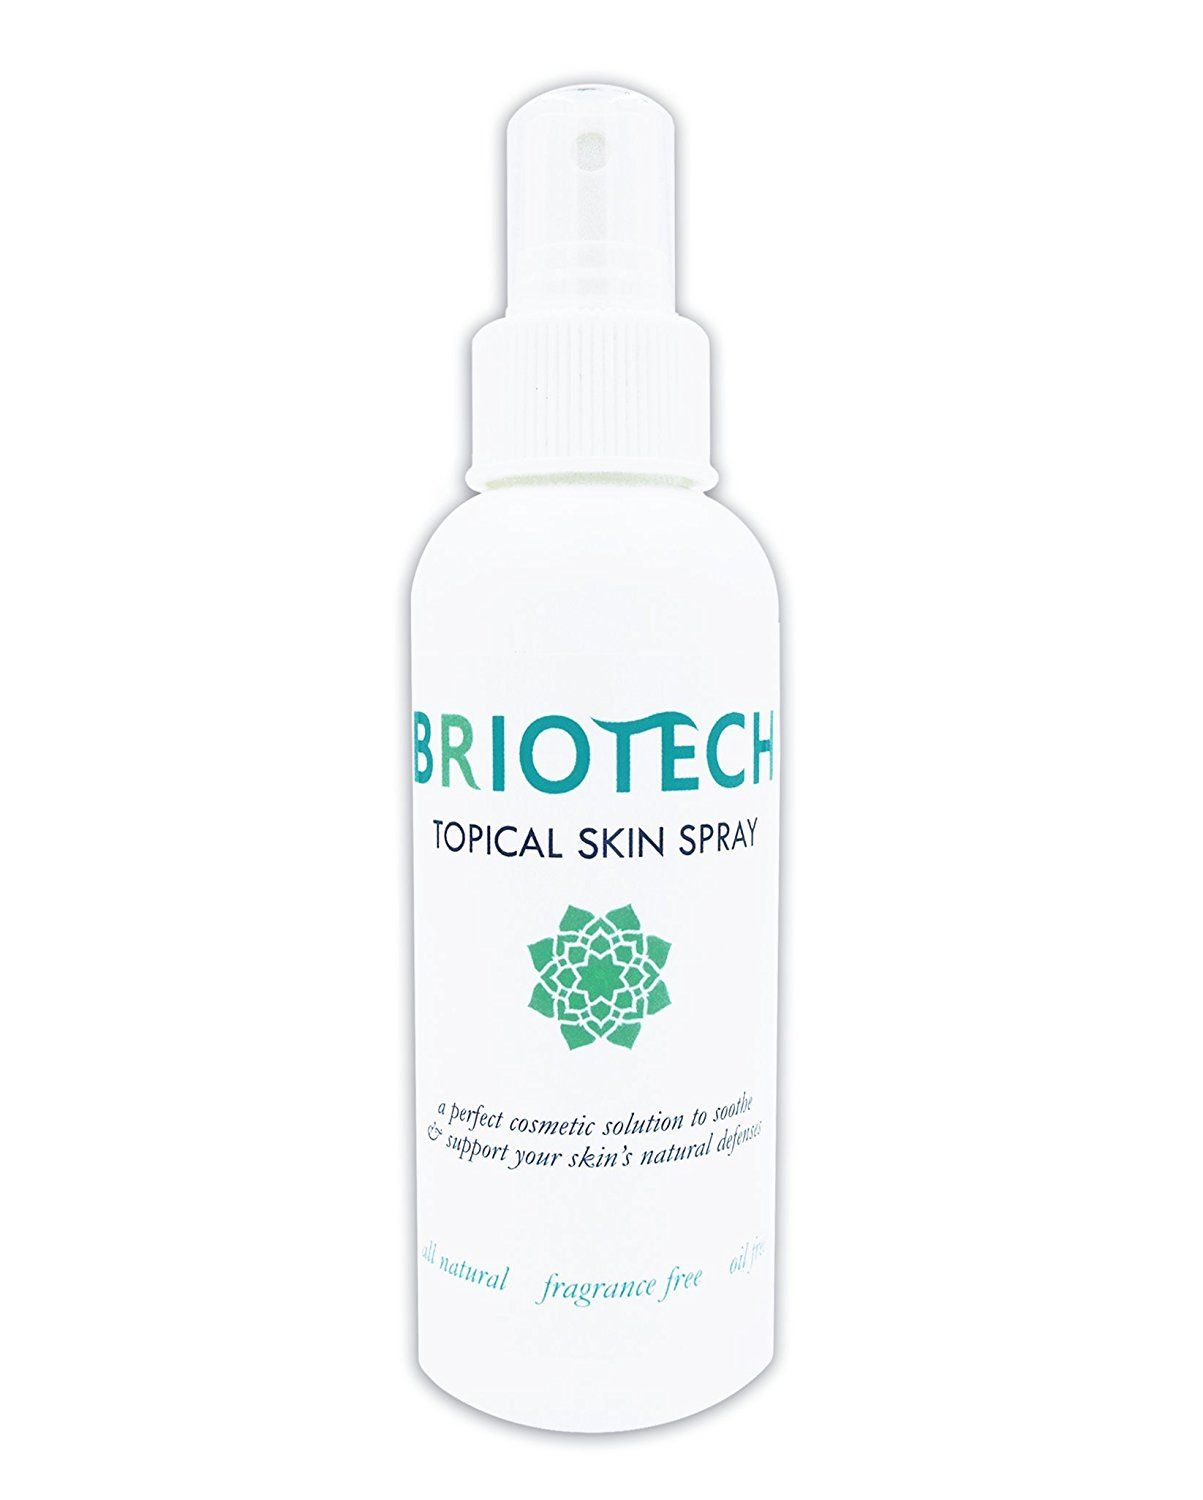 Briotech Topical Skin Spray A Perfect All Natural Cosmetic Solution 4 Oz Size See Cosmetic Solution Organic Moisturizer Products Face Products Skincare